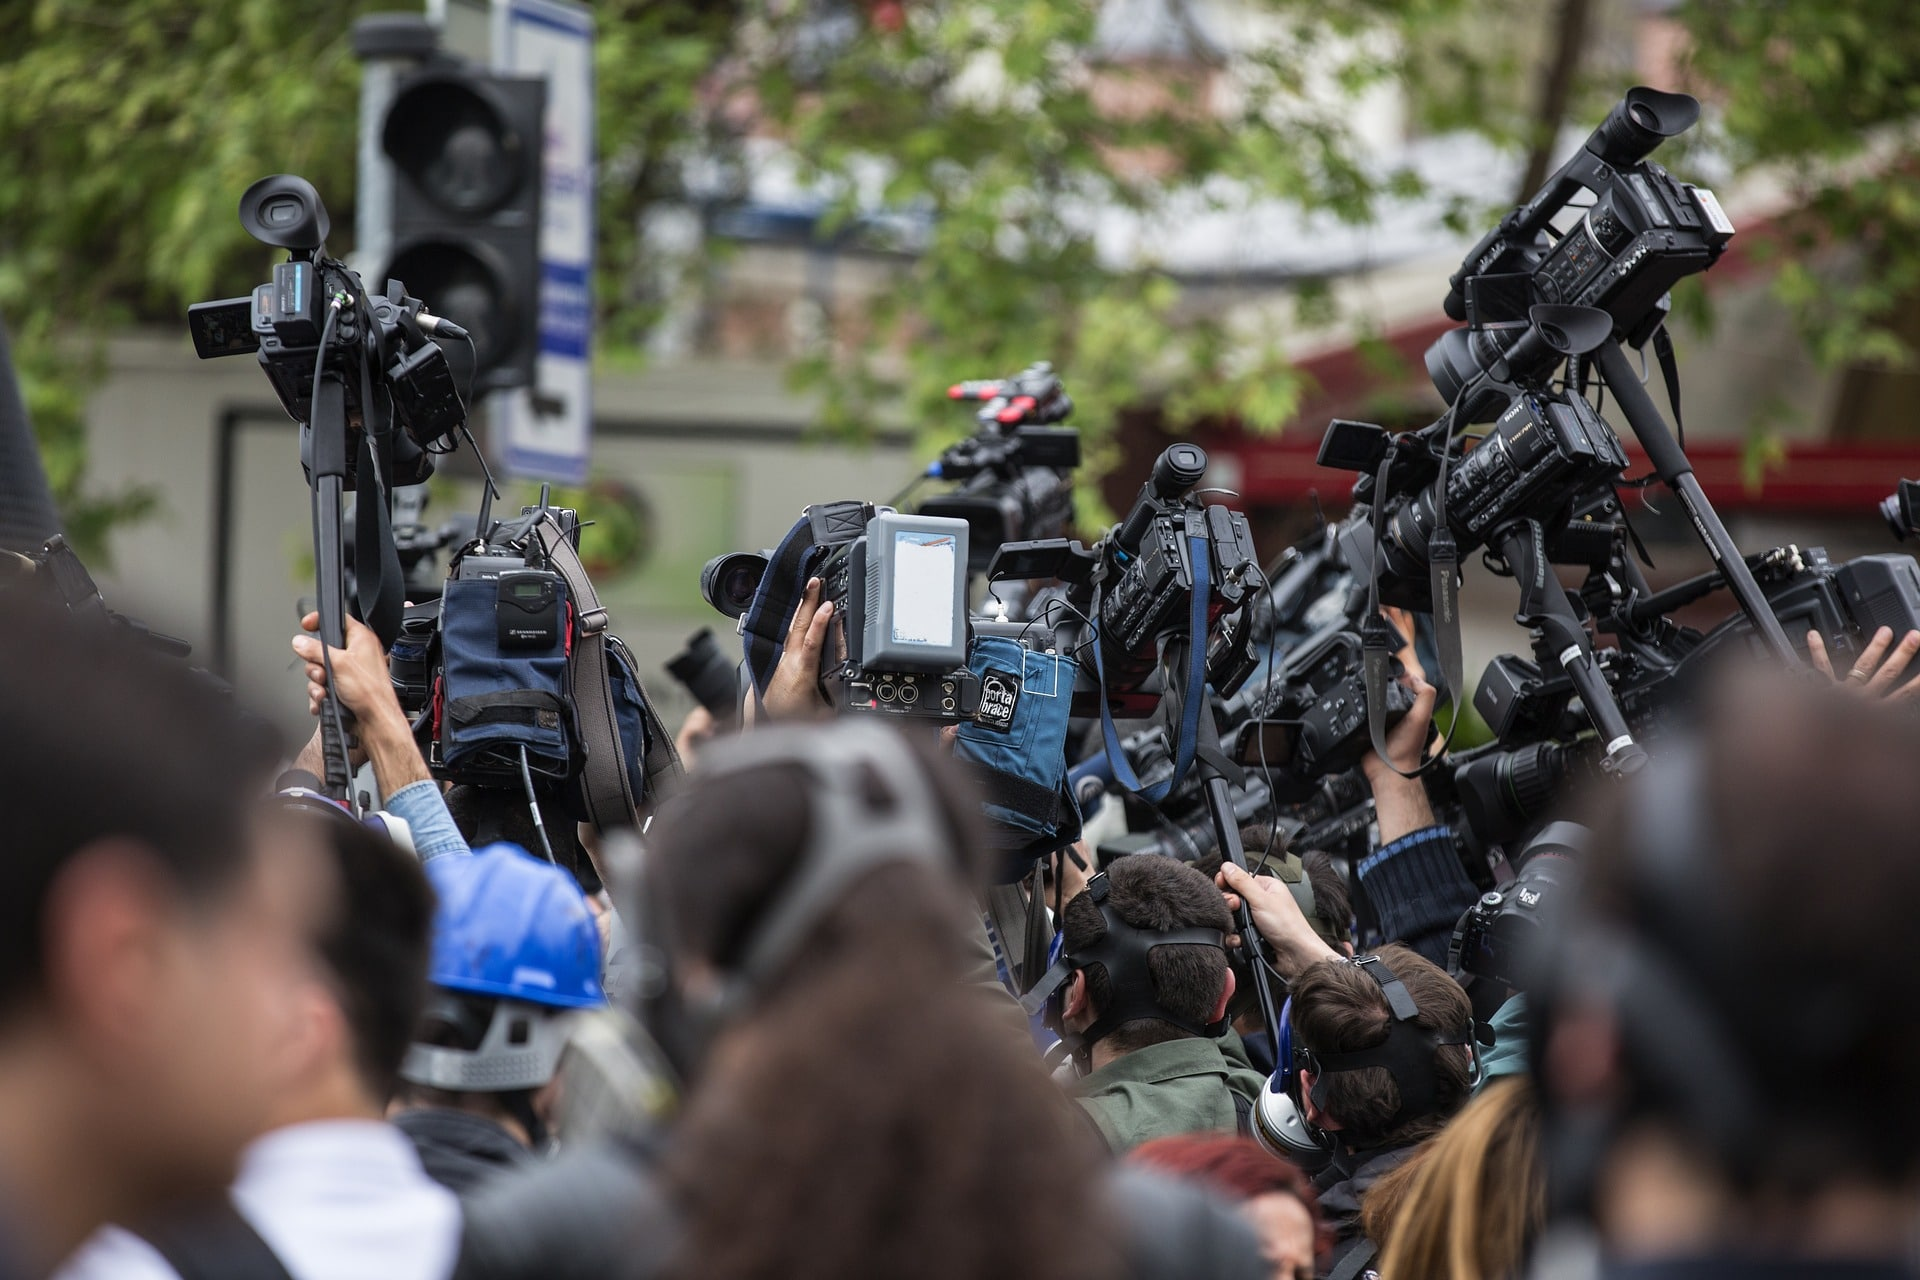 How to engage effectively with journalists